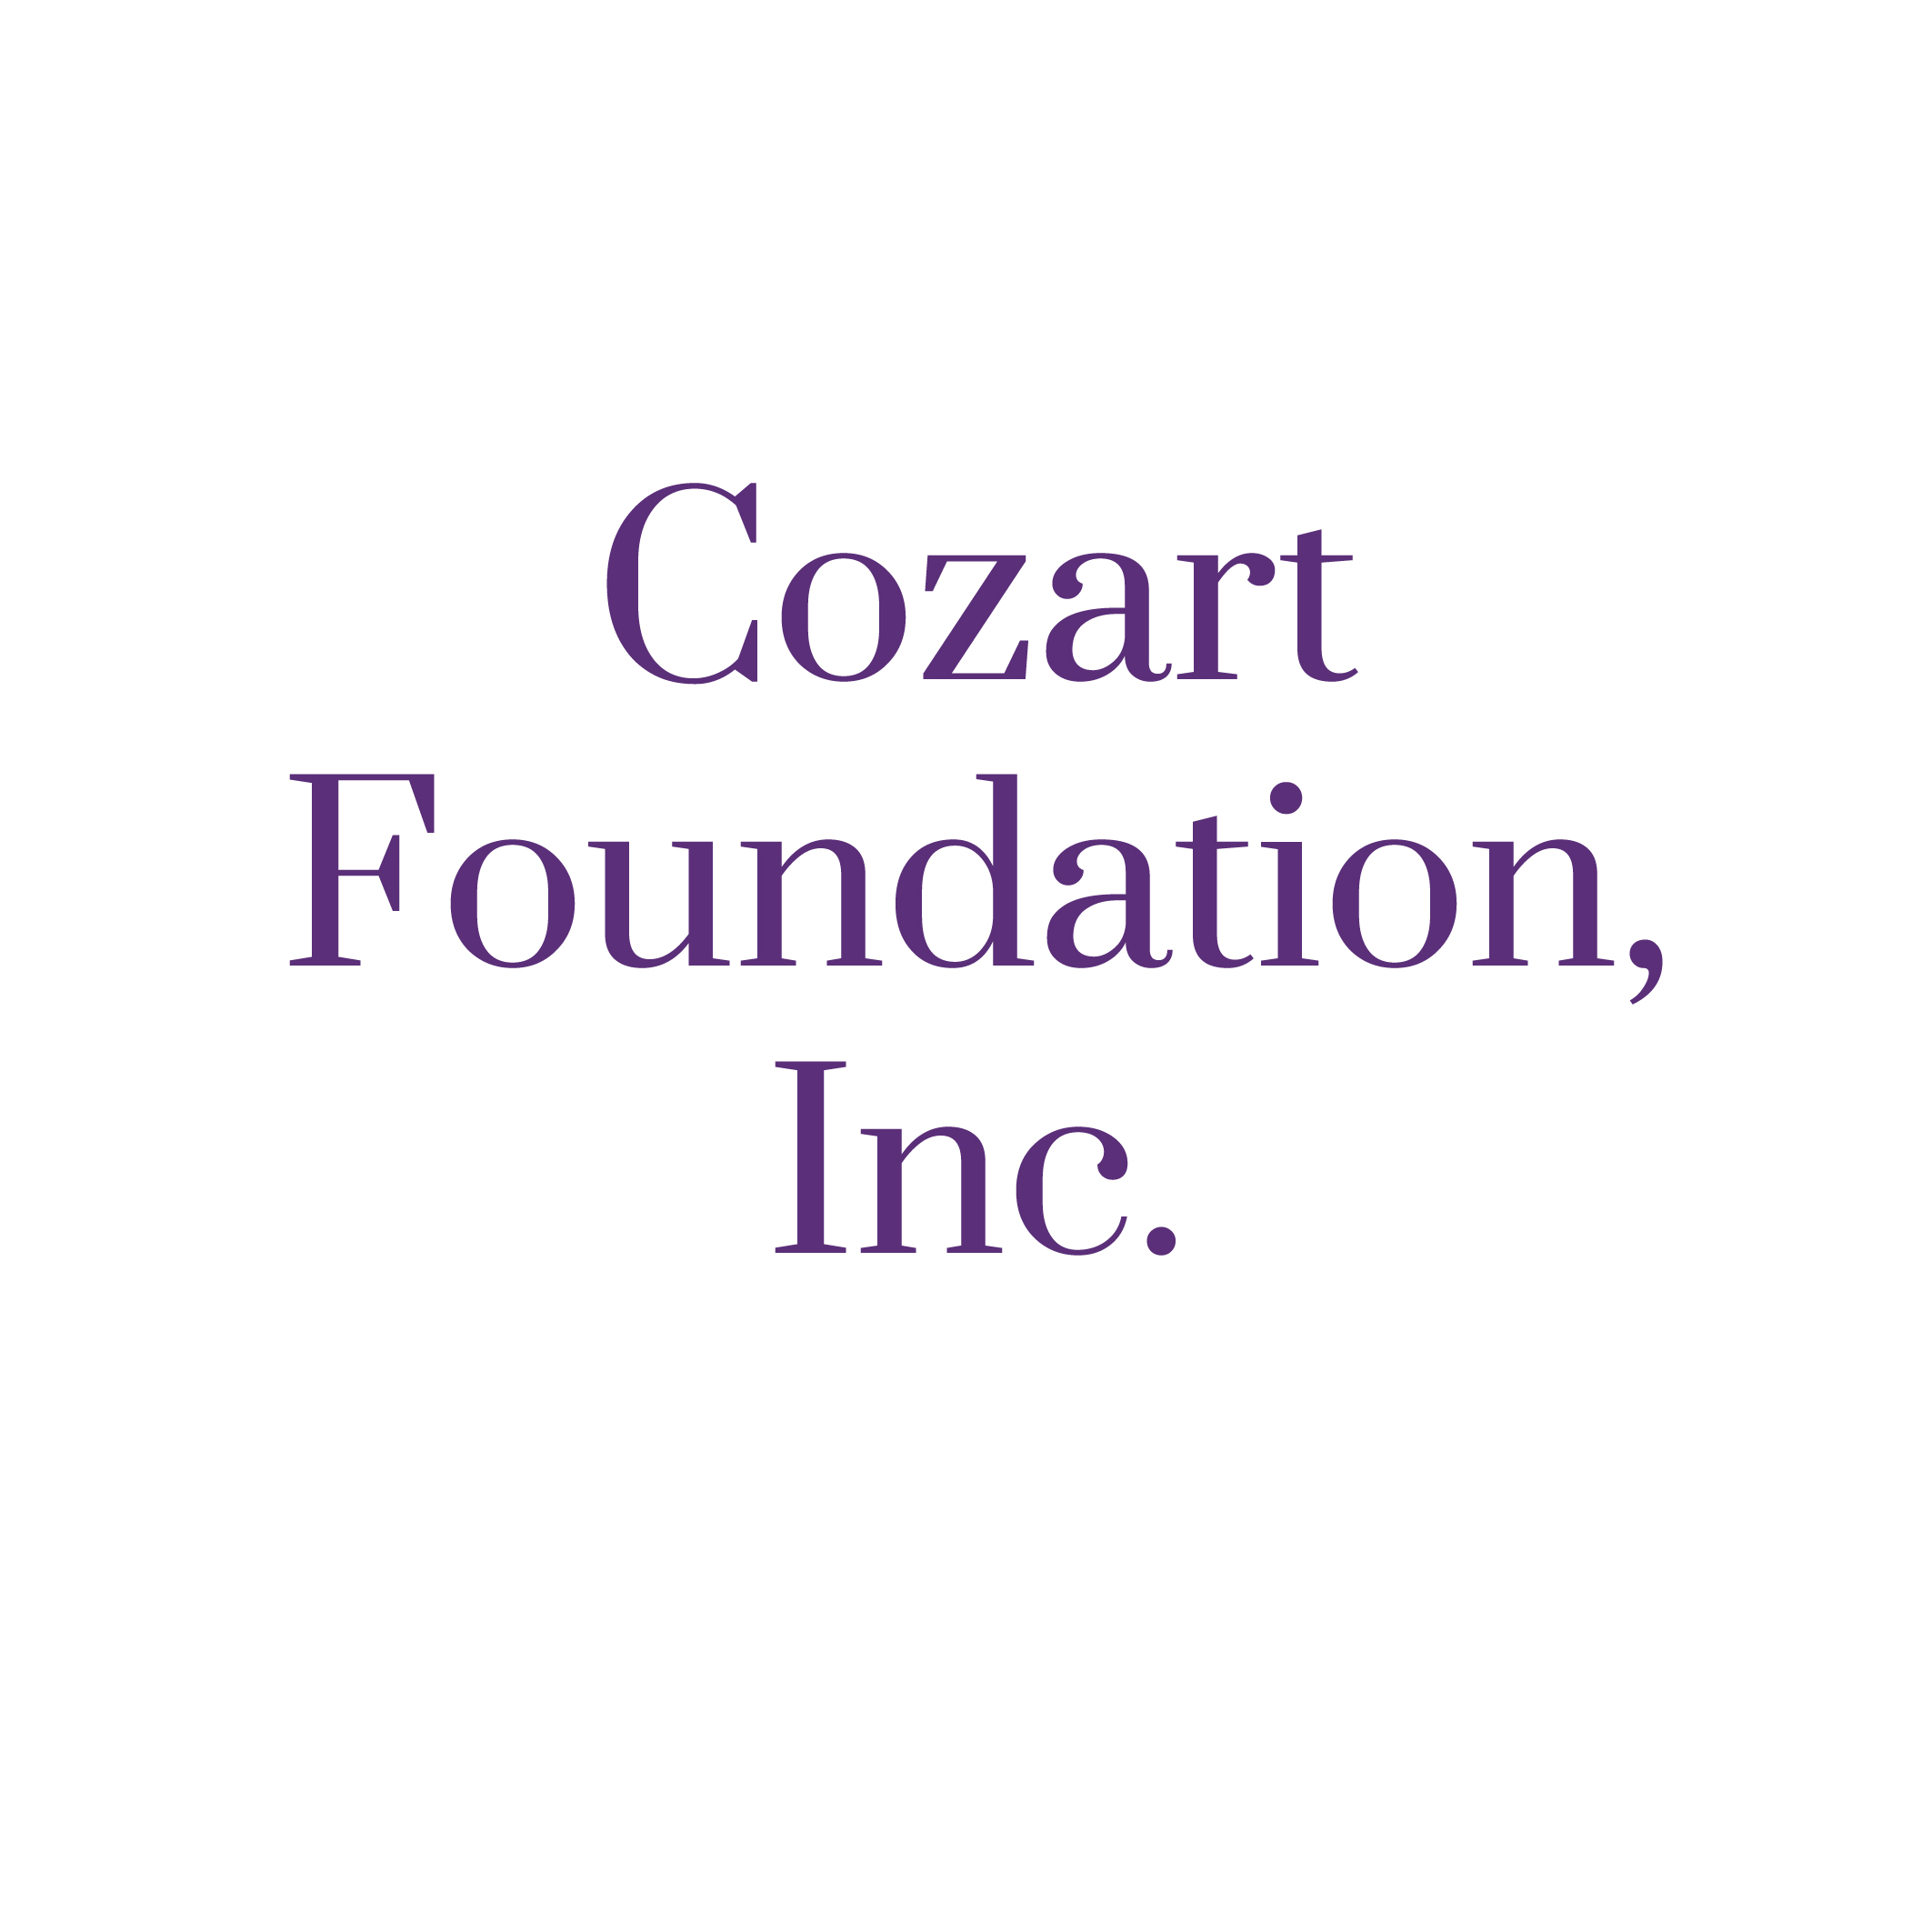 Cozart-Foundation.jpg